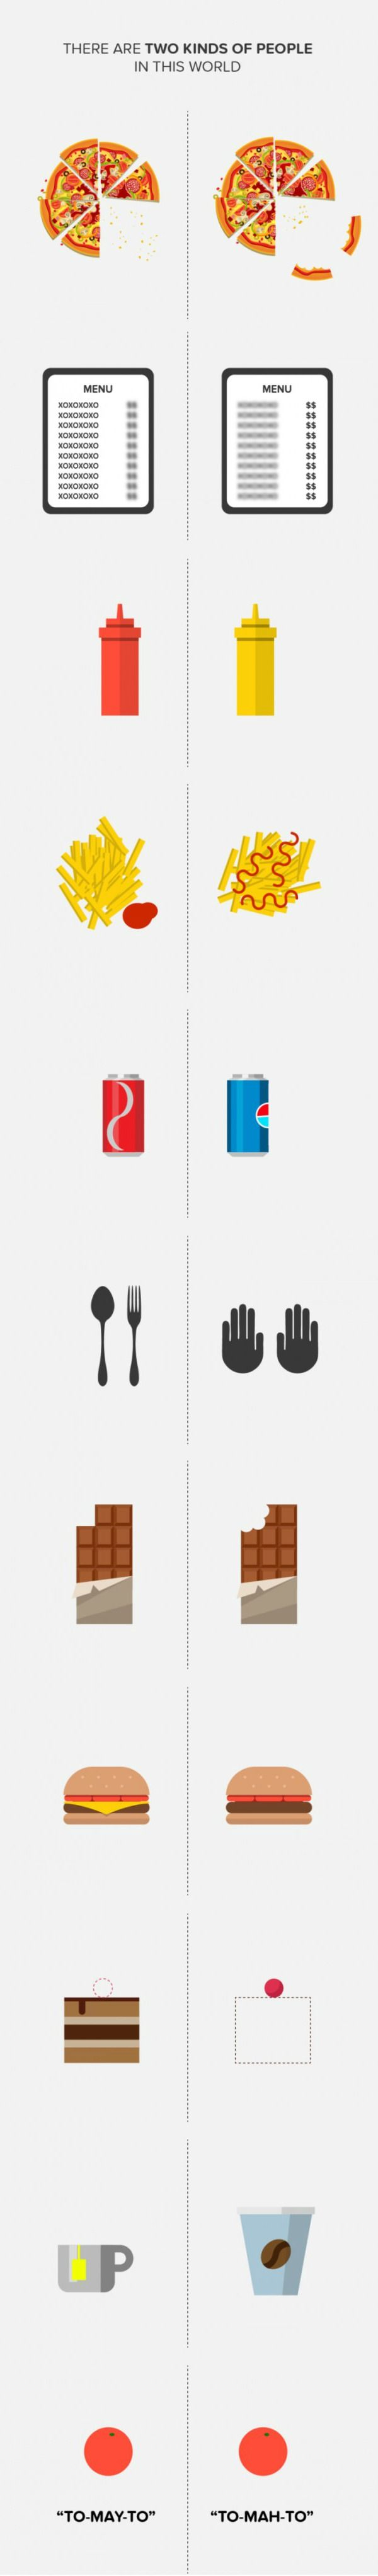 There are two kinds of people in this world. Which one are you?